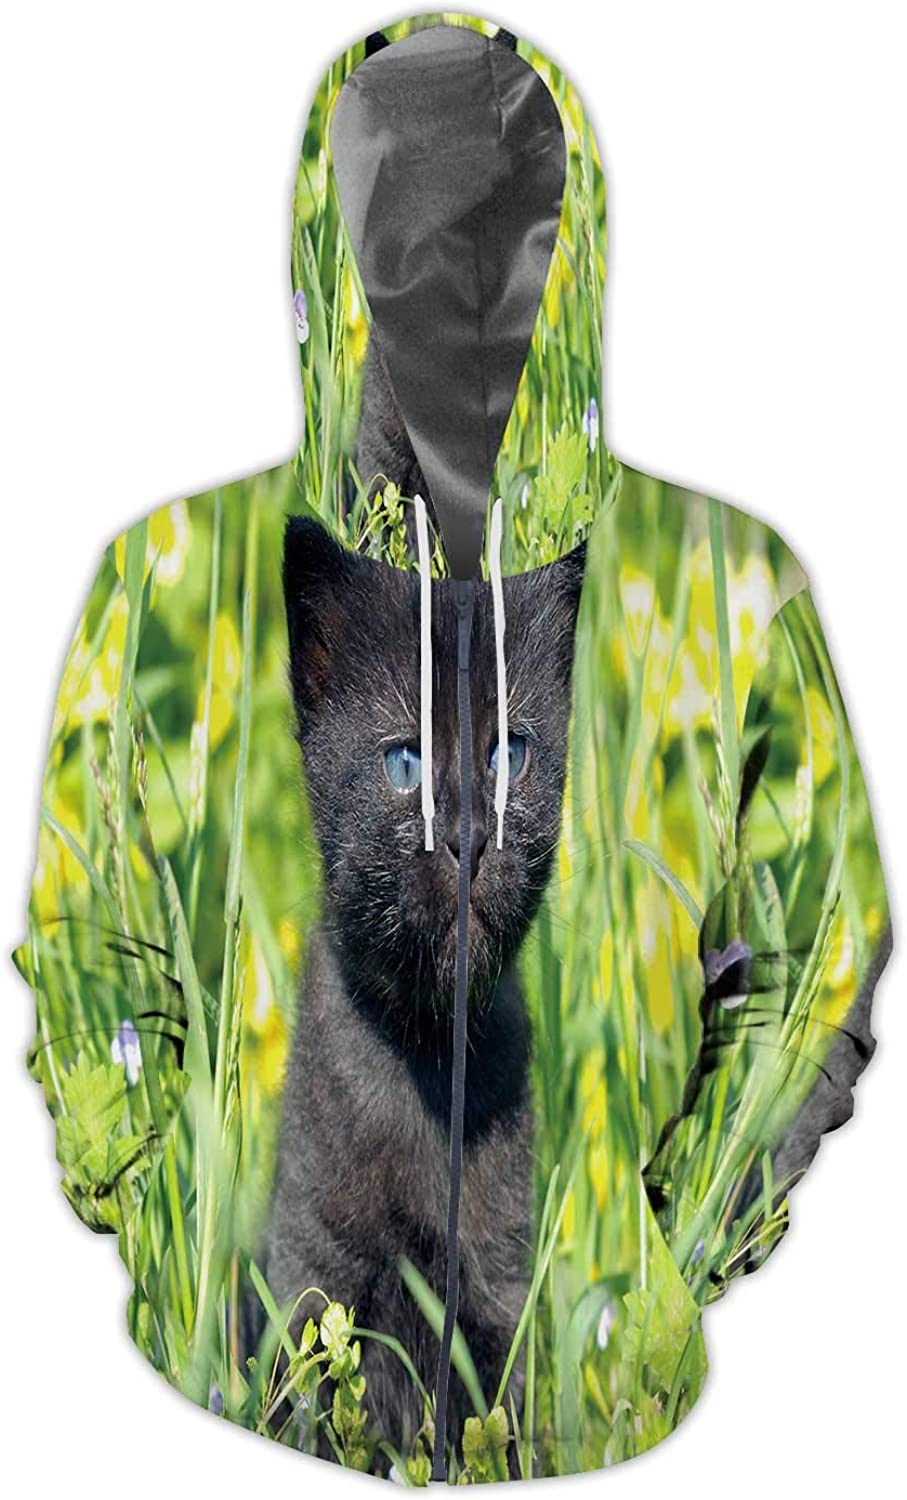 Illustration Germany,Men//Womens Warm Outerwear Jackets and Hoodies Domestic Cat S Cat Sleeping in Slippers